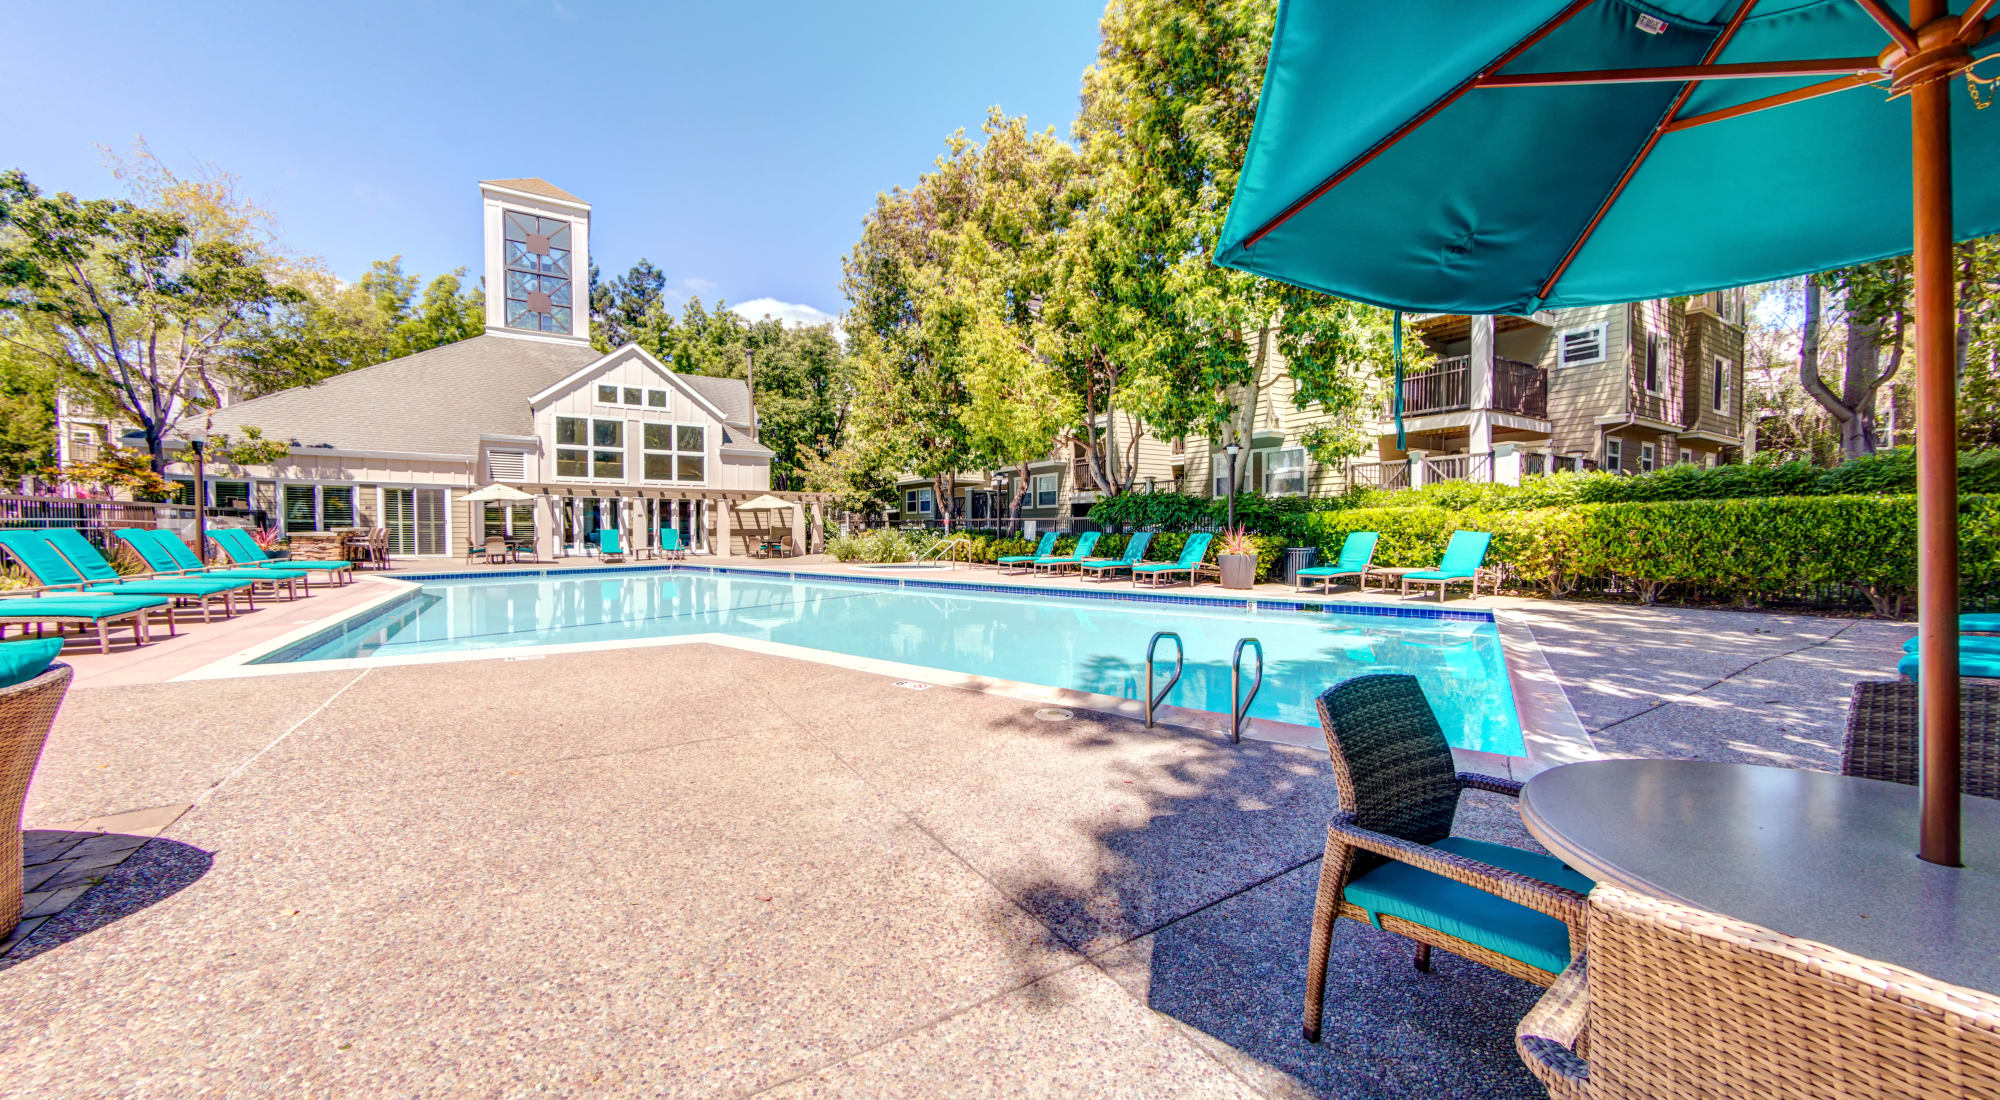 Amenities at Sofi Sunnyvale in Sunnyvale, California